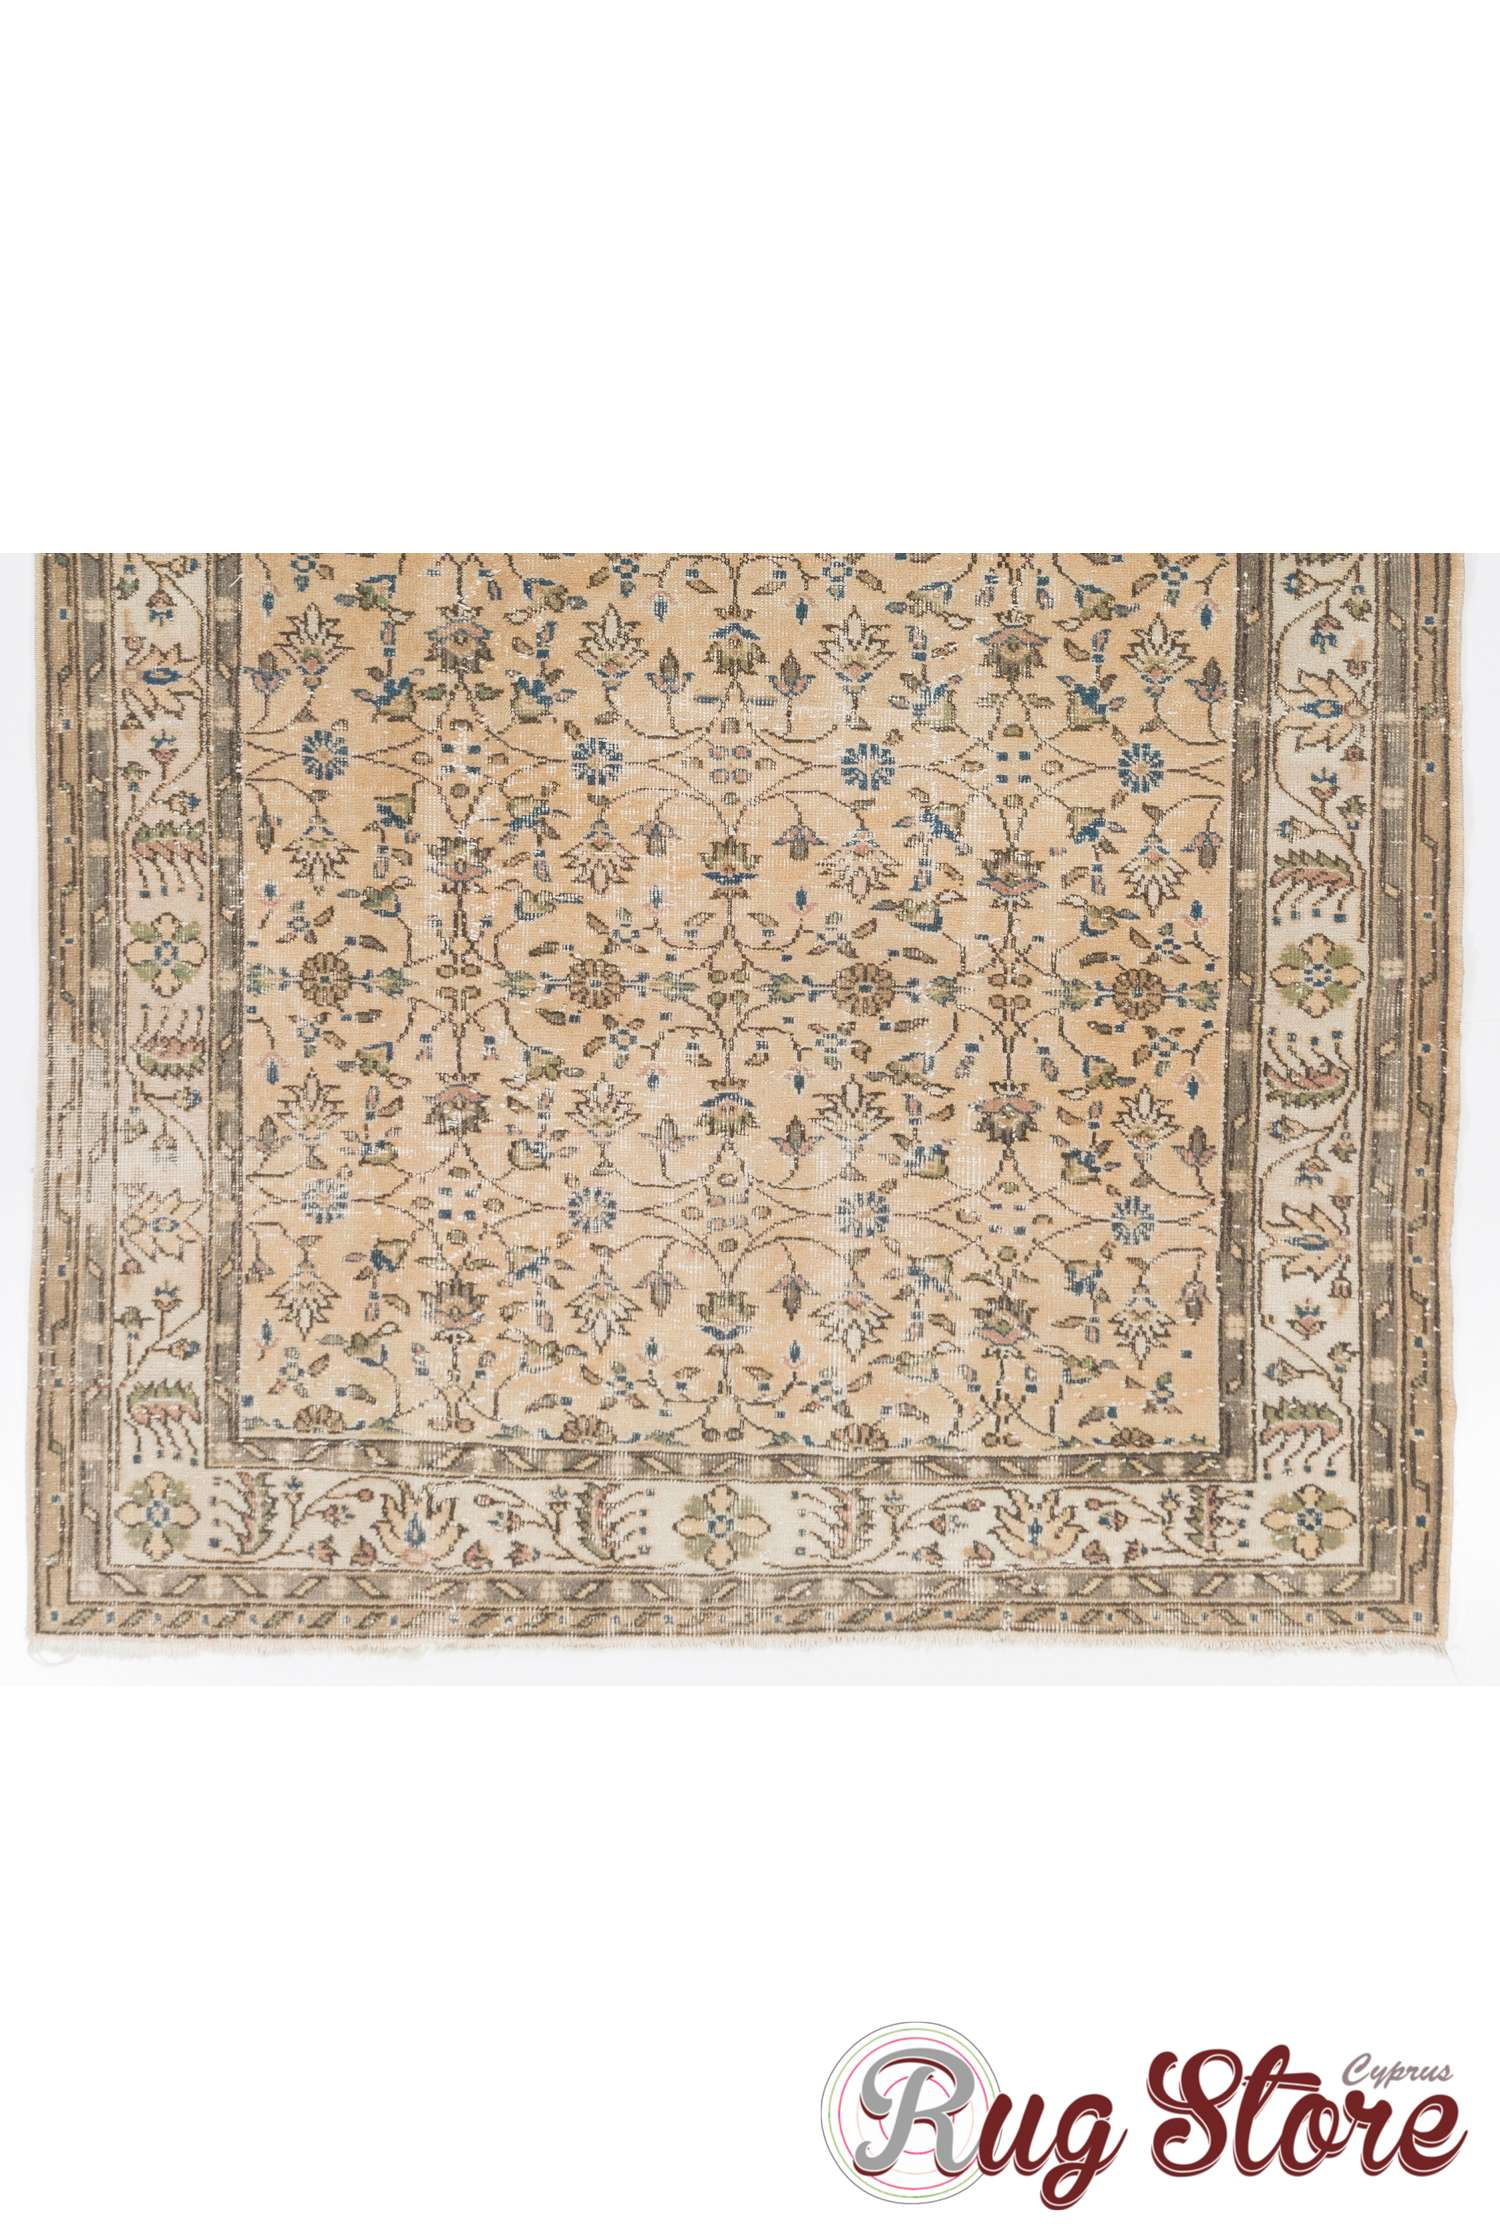 5 8 Quot X 9 2 Quot 173 X 281 Cm Turkish Antique Washed Rug